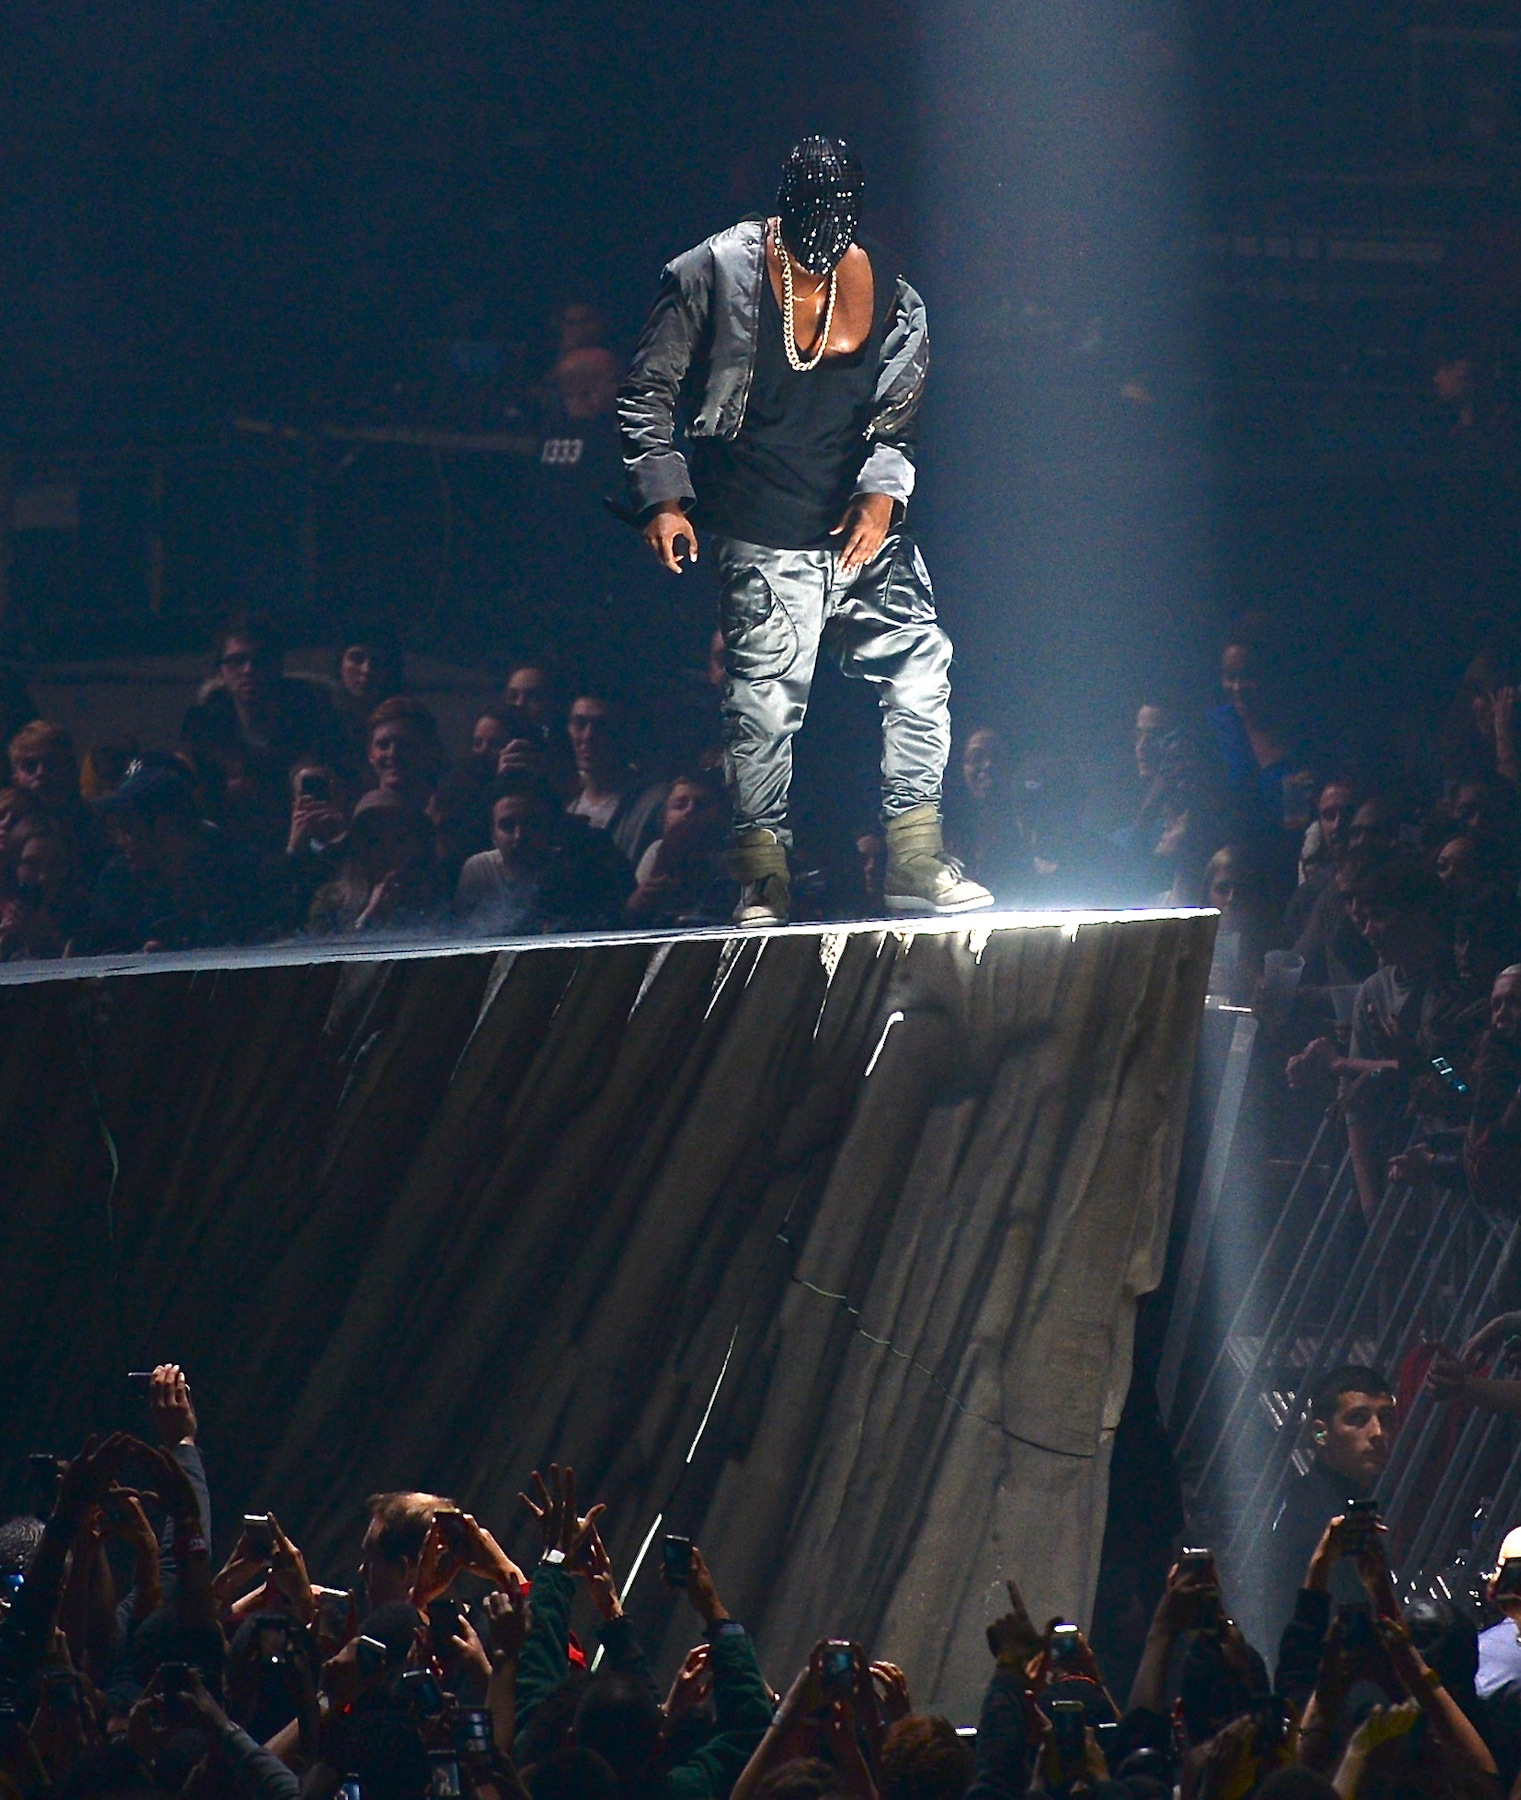 Kanye West performs on Yeezus Tour in NJ